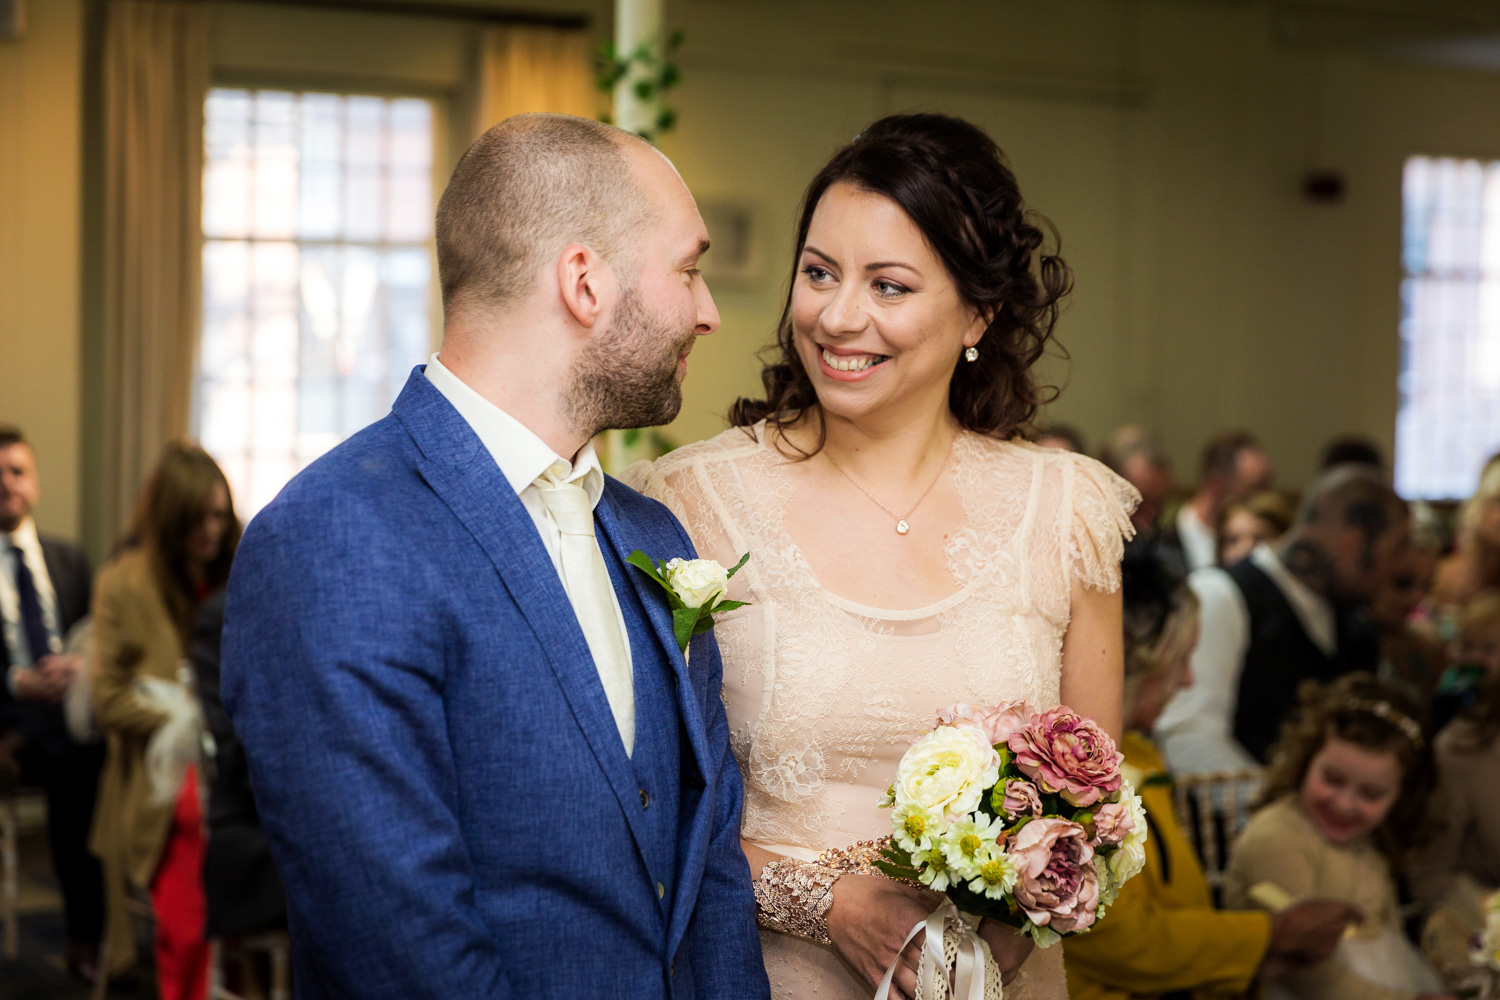 A National Trust wedding at Quarry Bank Mill